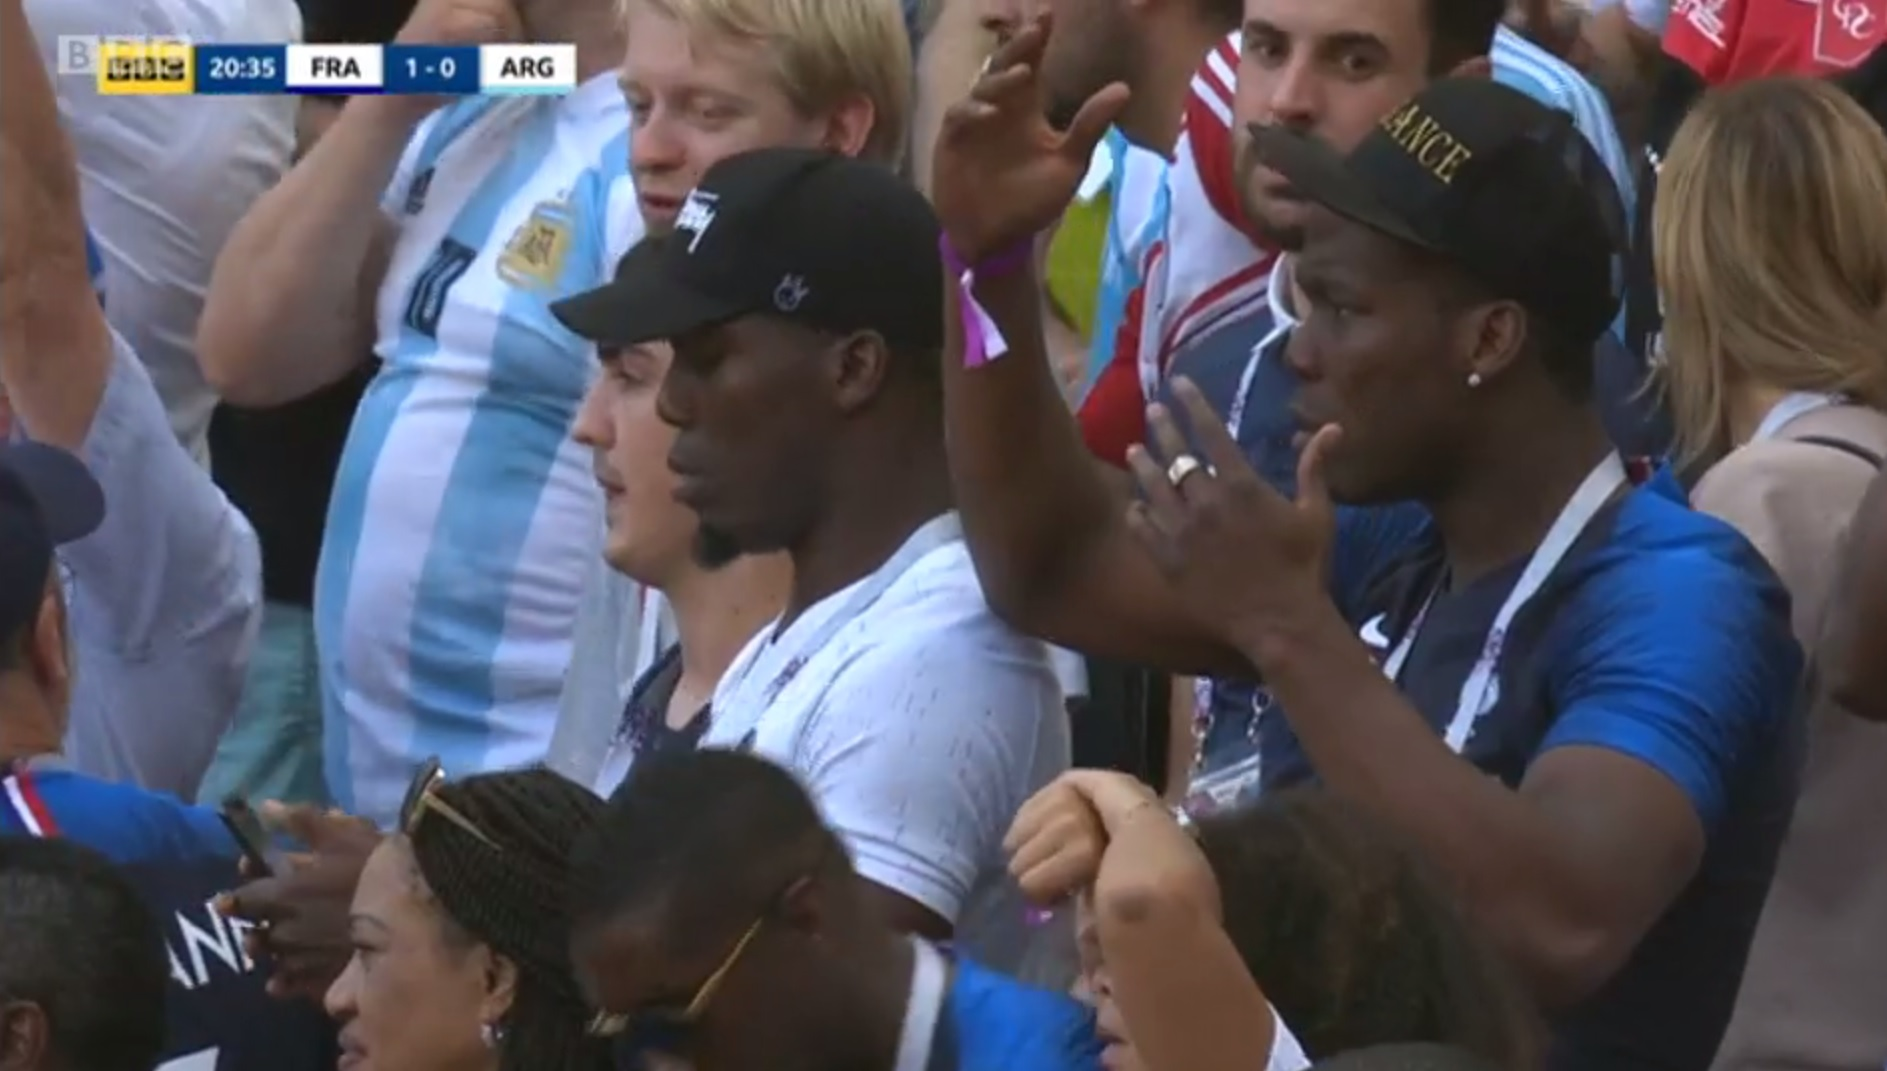 Paul Pogba's brothers unimpressed with his terrible free-kick in France vs Argentina